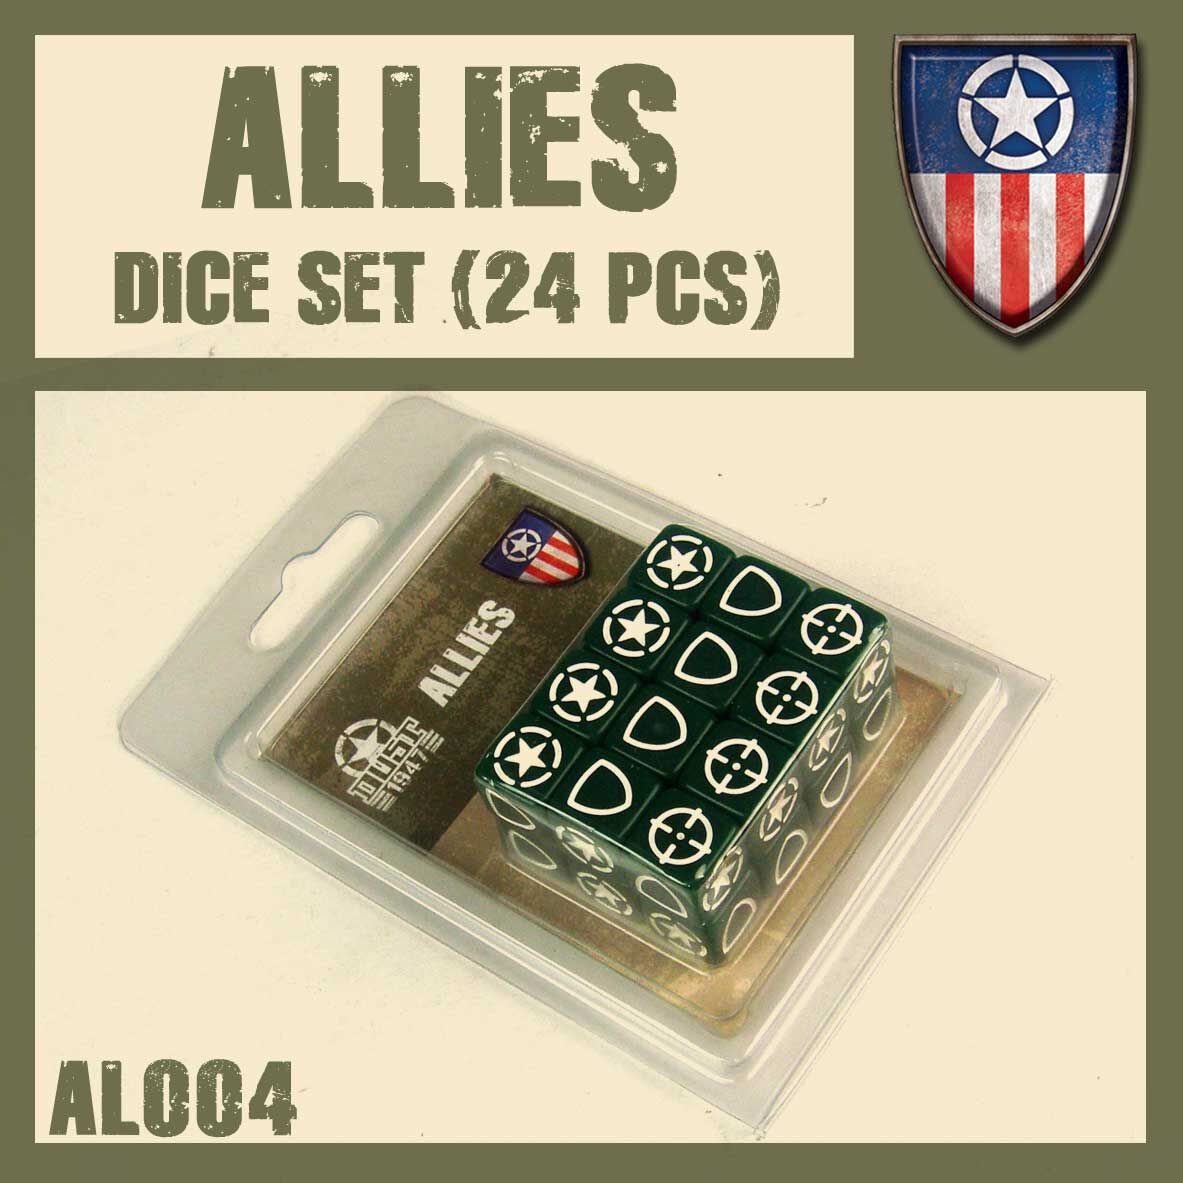 ALLIED DICE SET